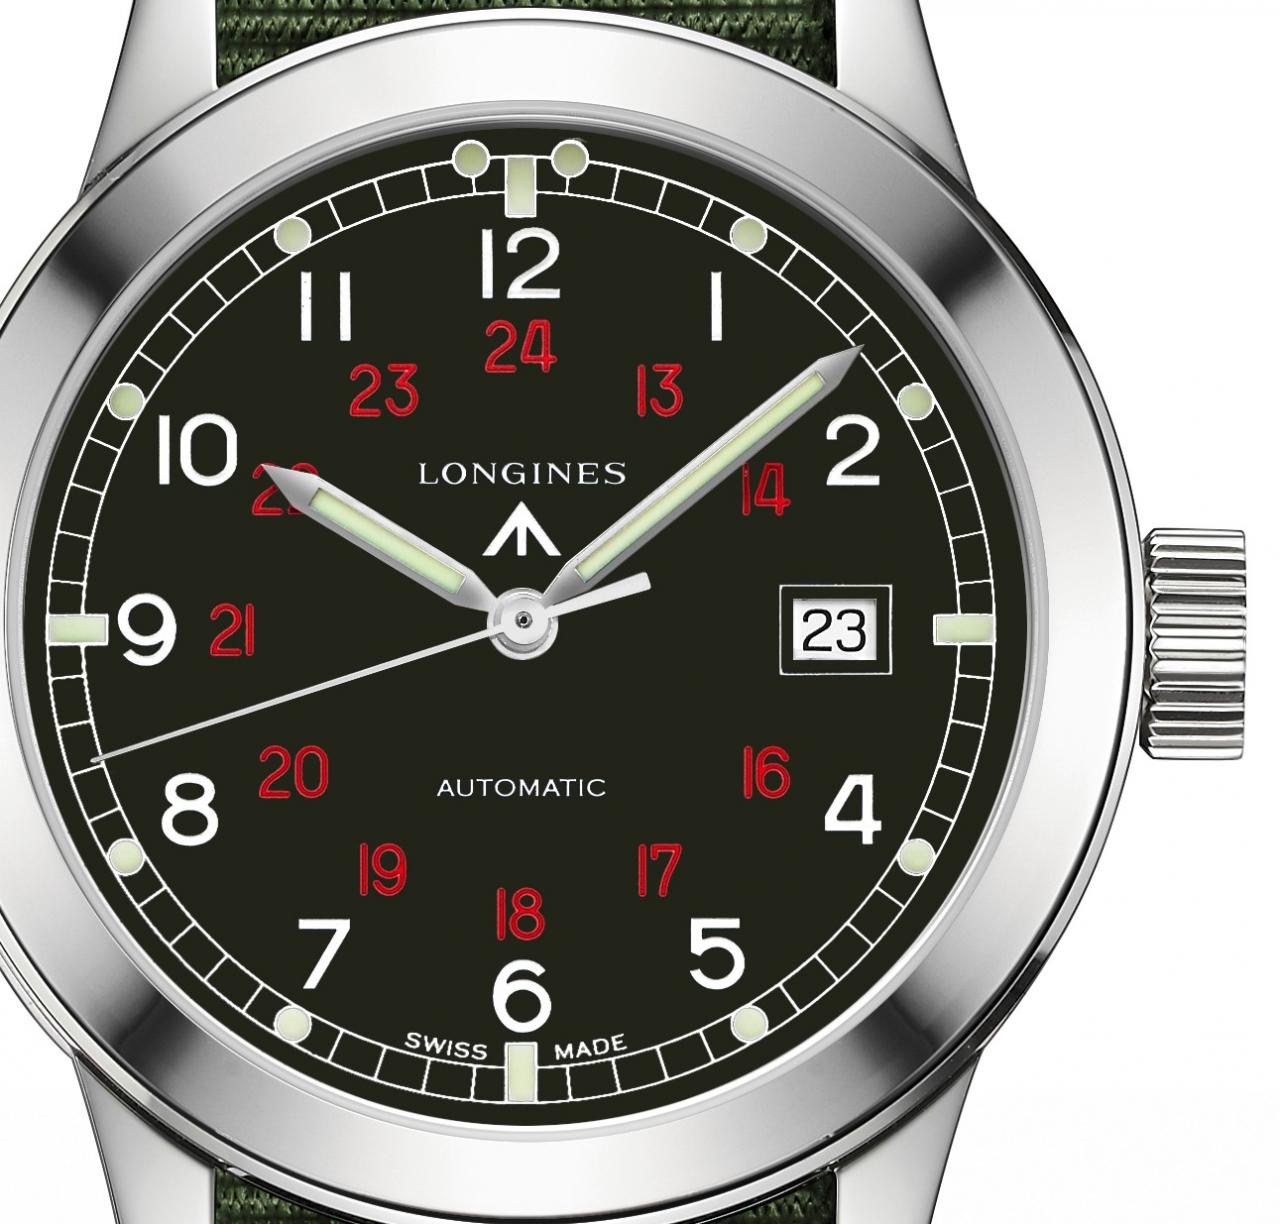 Longines Heritage Military COSD black dial - L2.832.4.53.5 - Perpetuelle